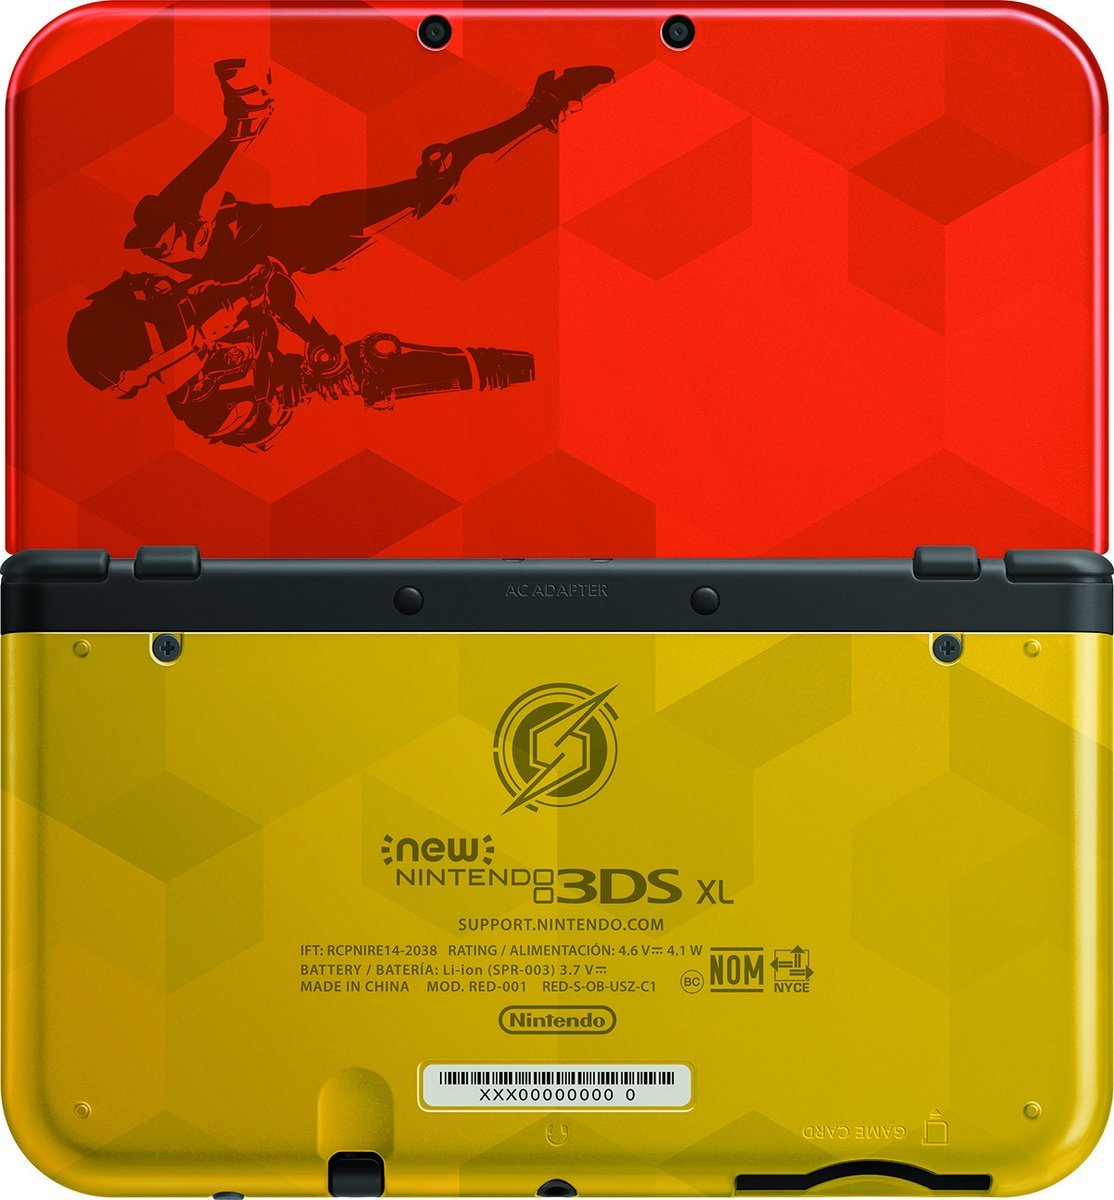 Metroid Samus Returns Limited Edition New 3DS Announced